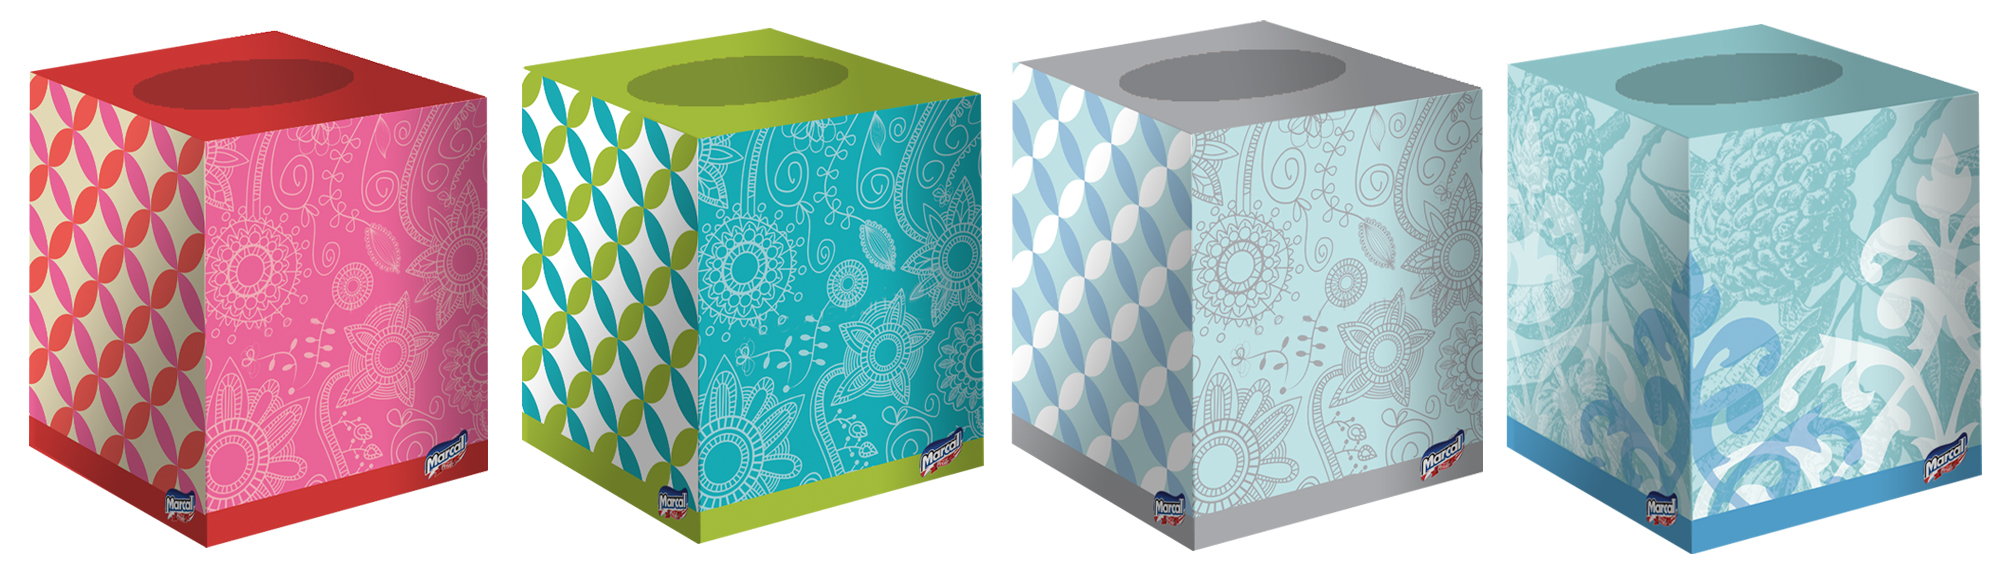 Tissue Box Design Exploration | Arena Design